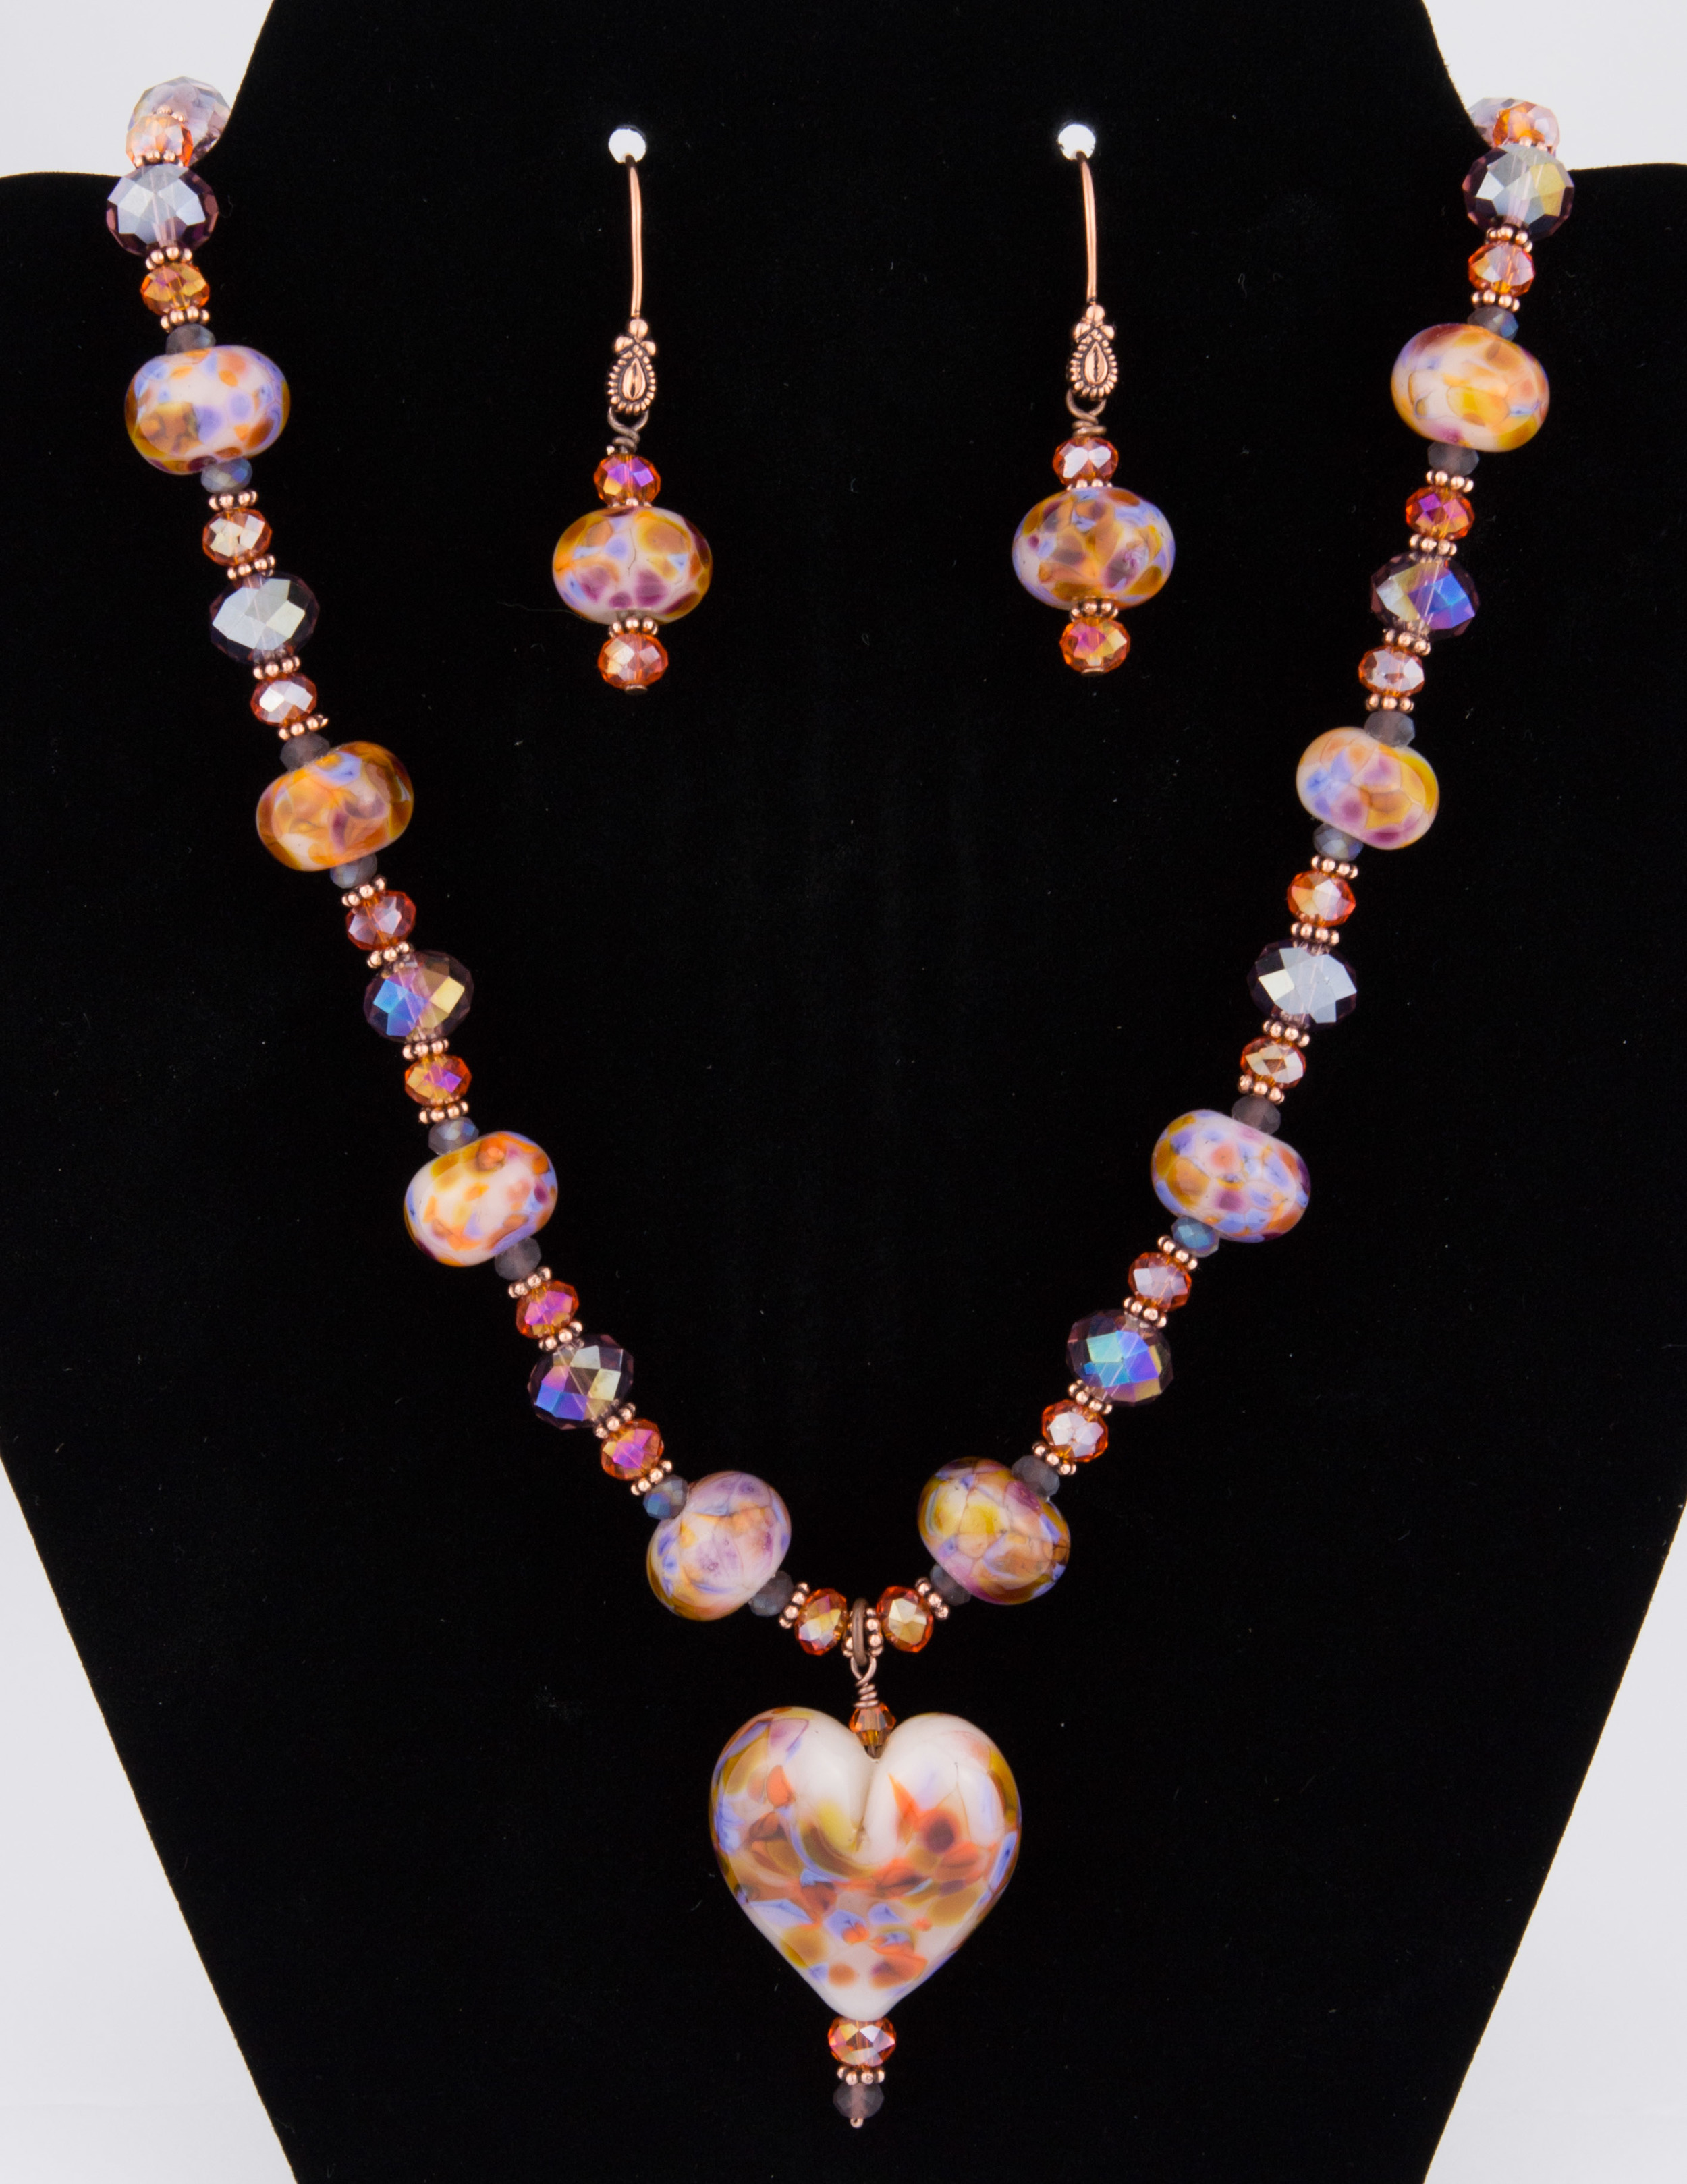 Necklace made for American Heart Association silent auction